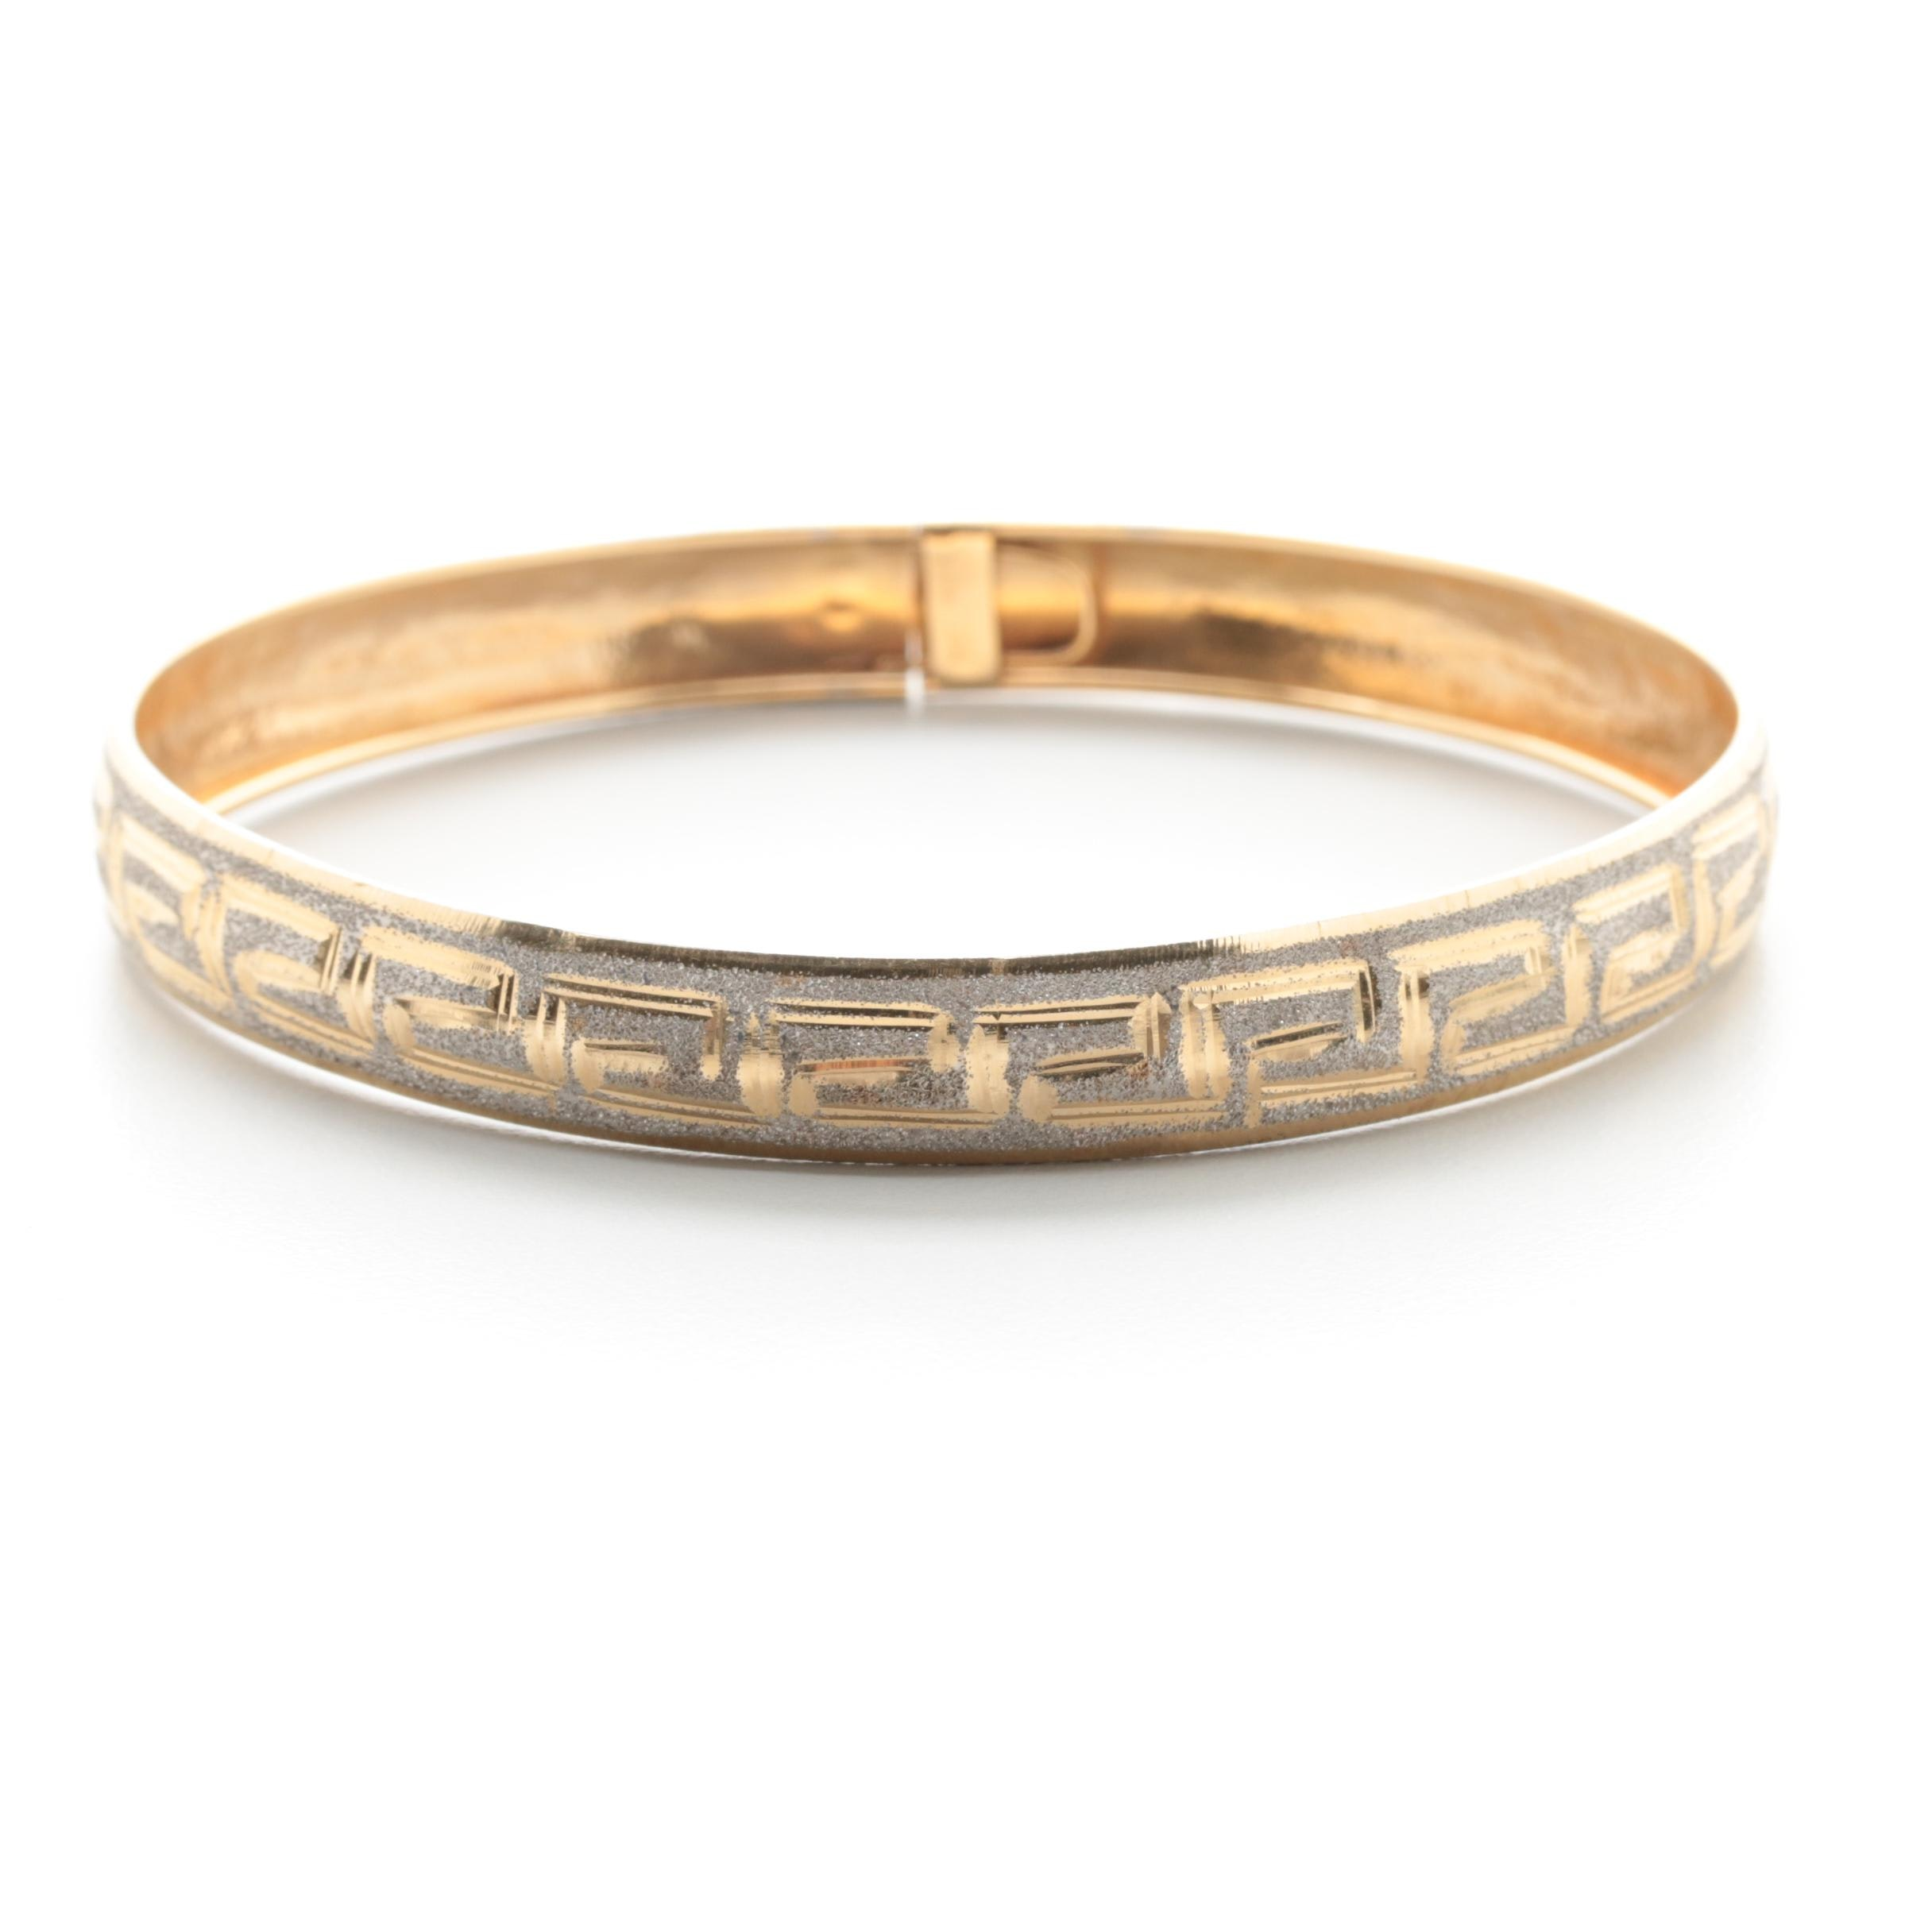 14K Yellow Gold Greek Key Bracelet